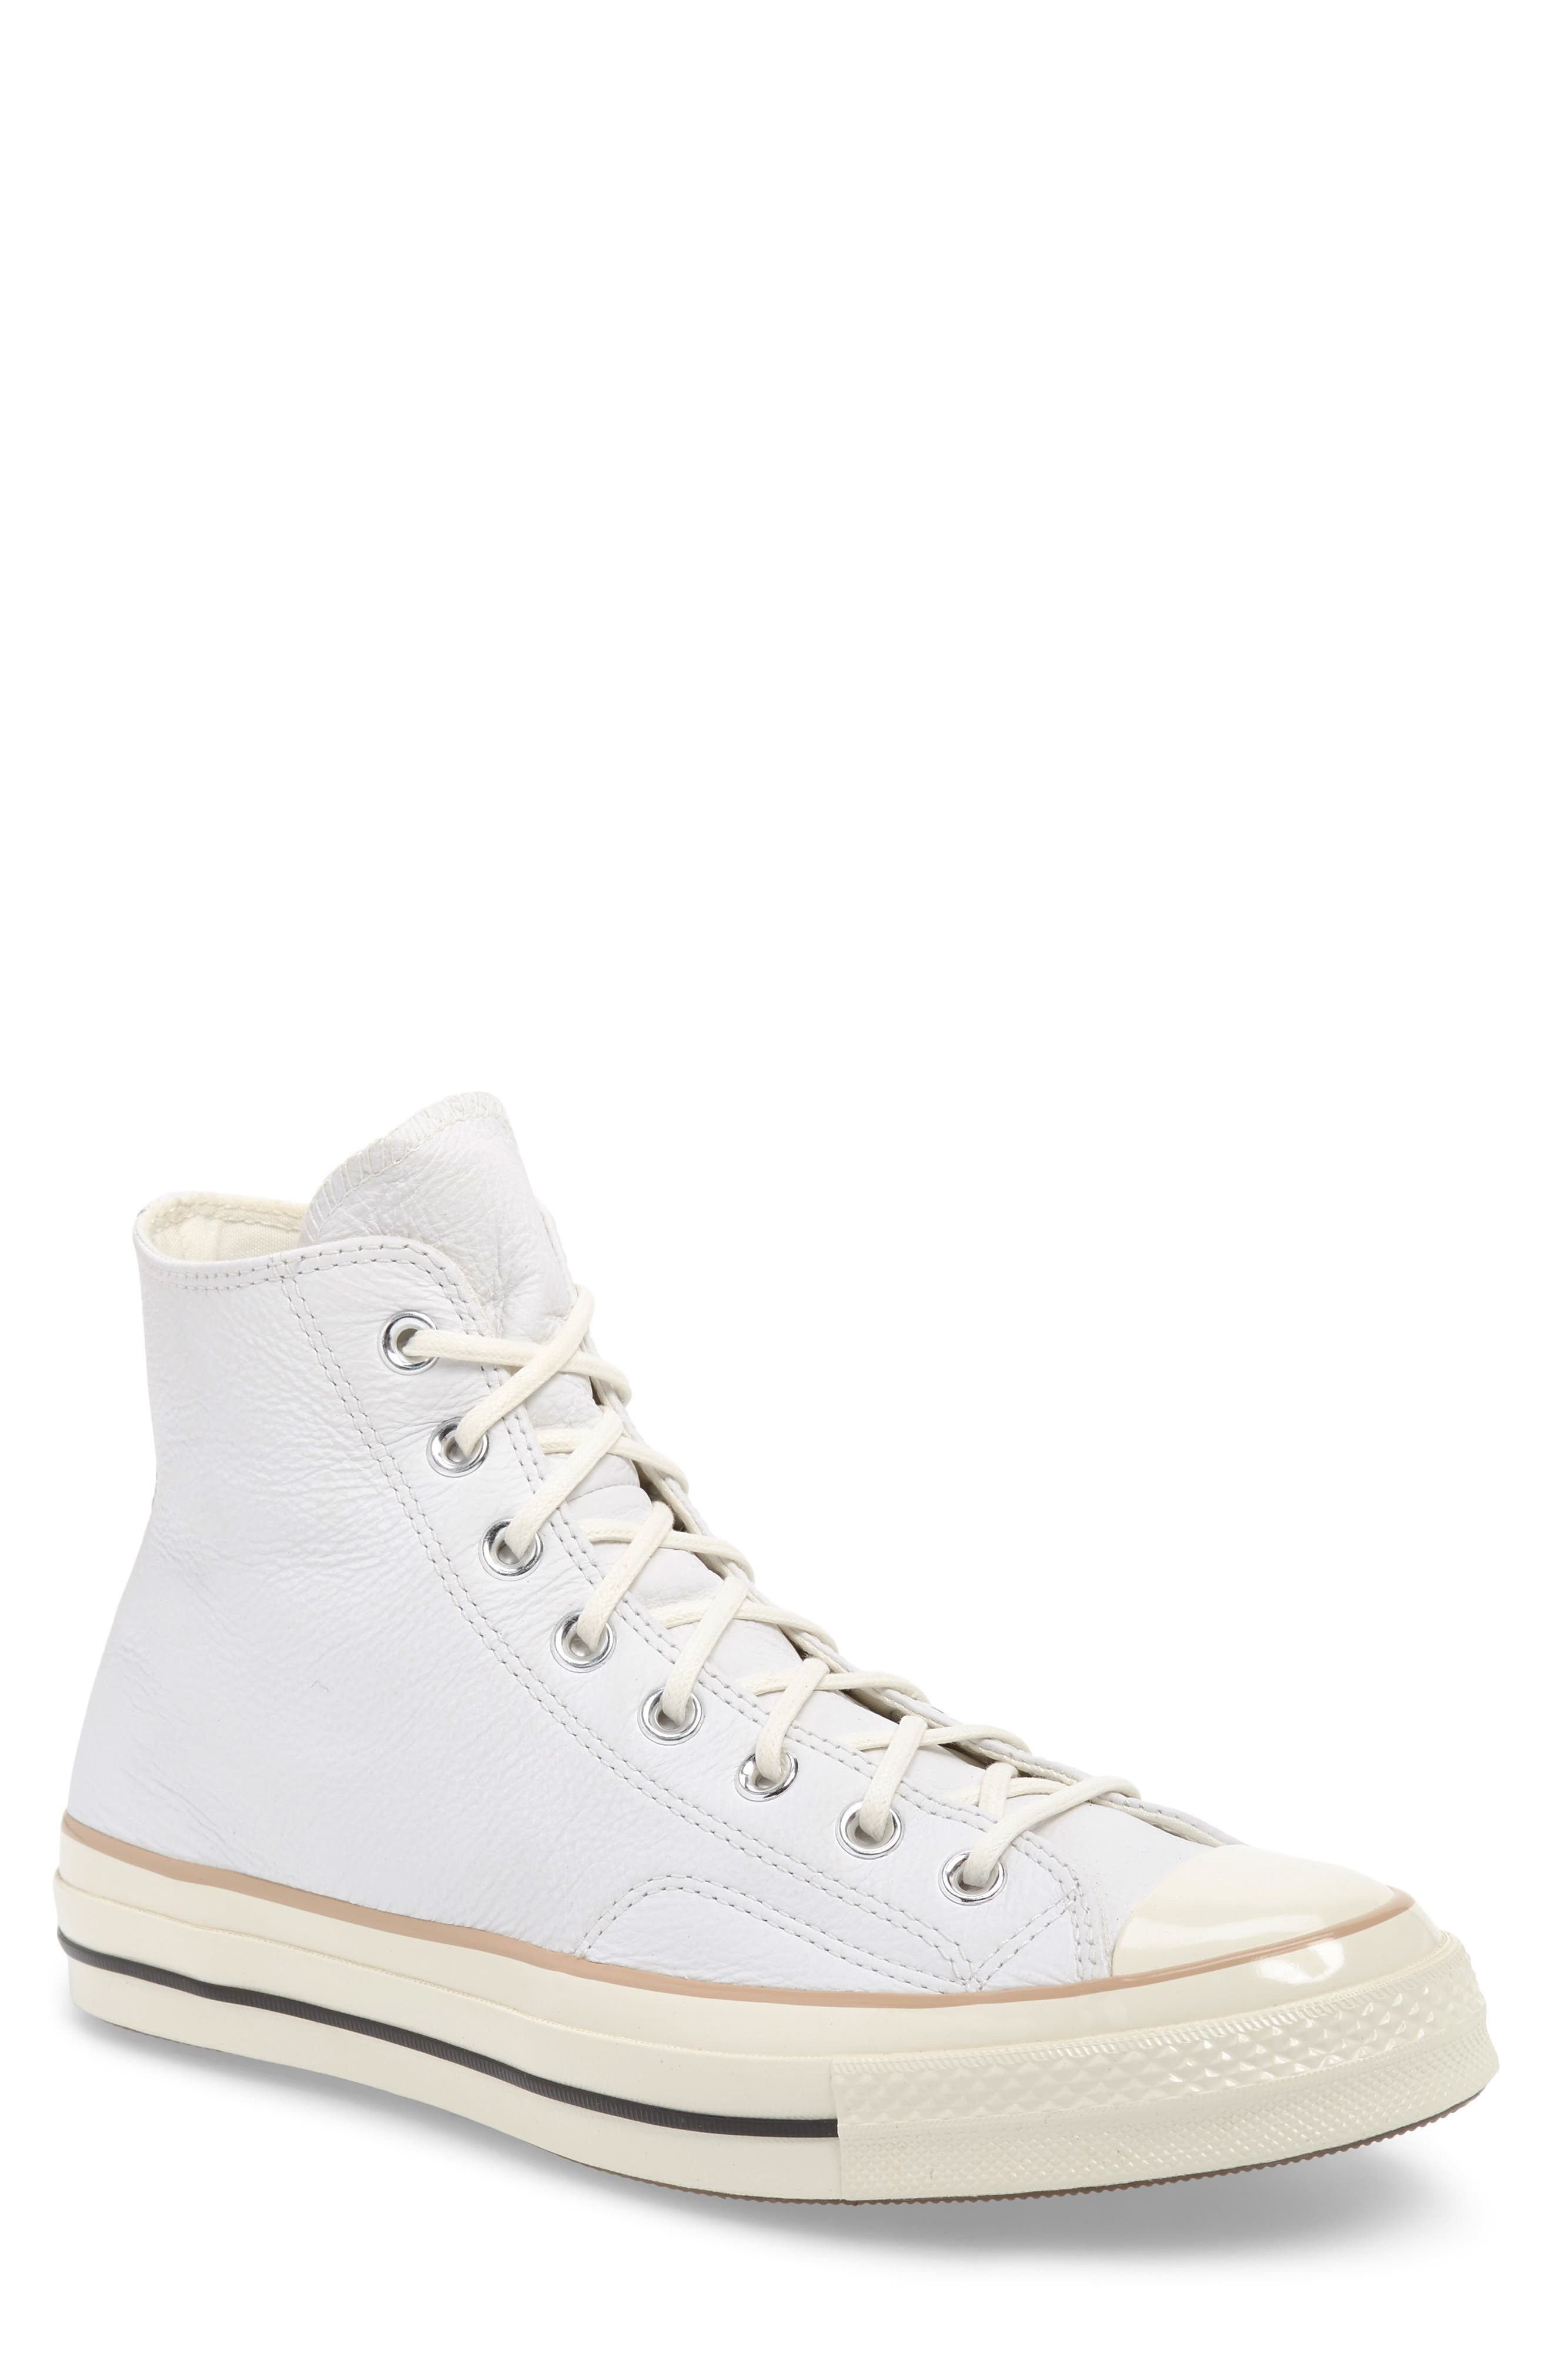 Chuck 70 Boot Leather High Top Sneaker,                             Main thumbnail 1, color,                             WHITE/ LIGHT FAWN/ EGRET